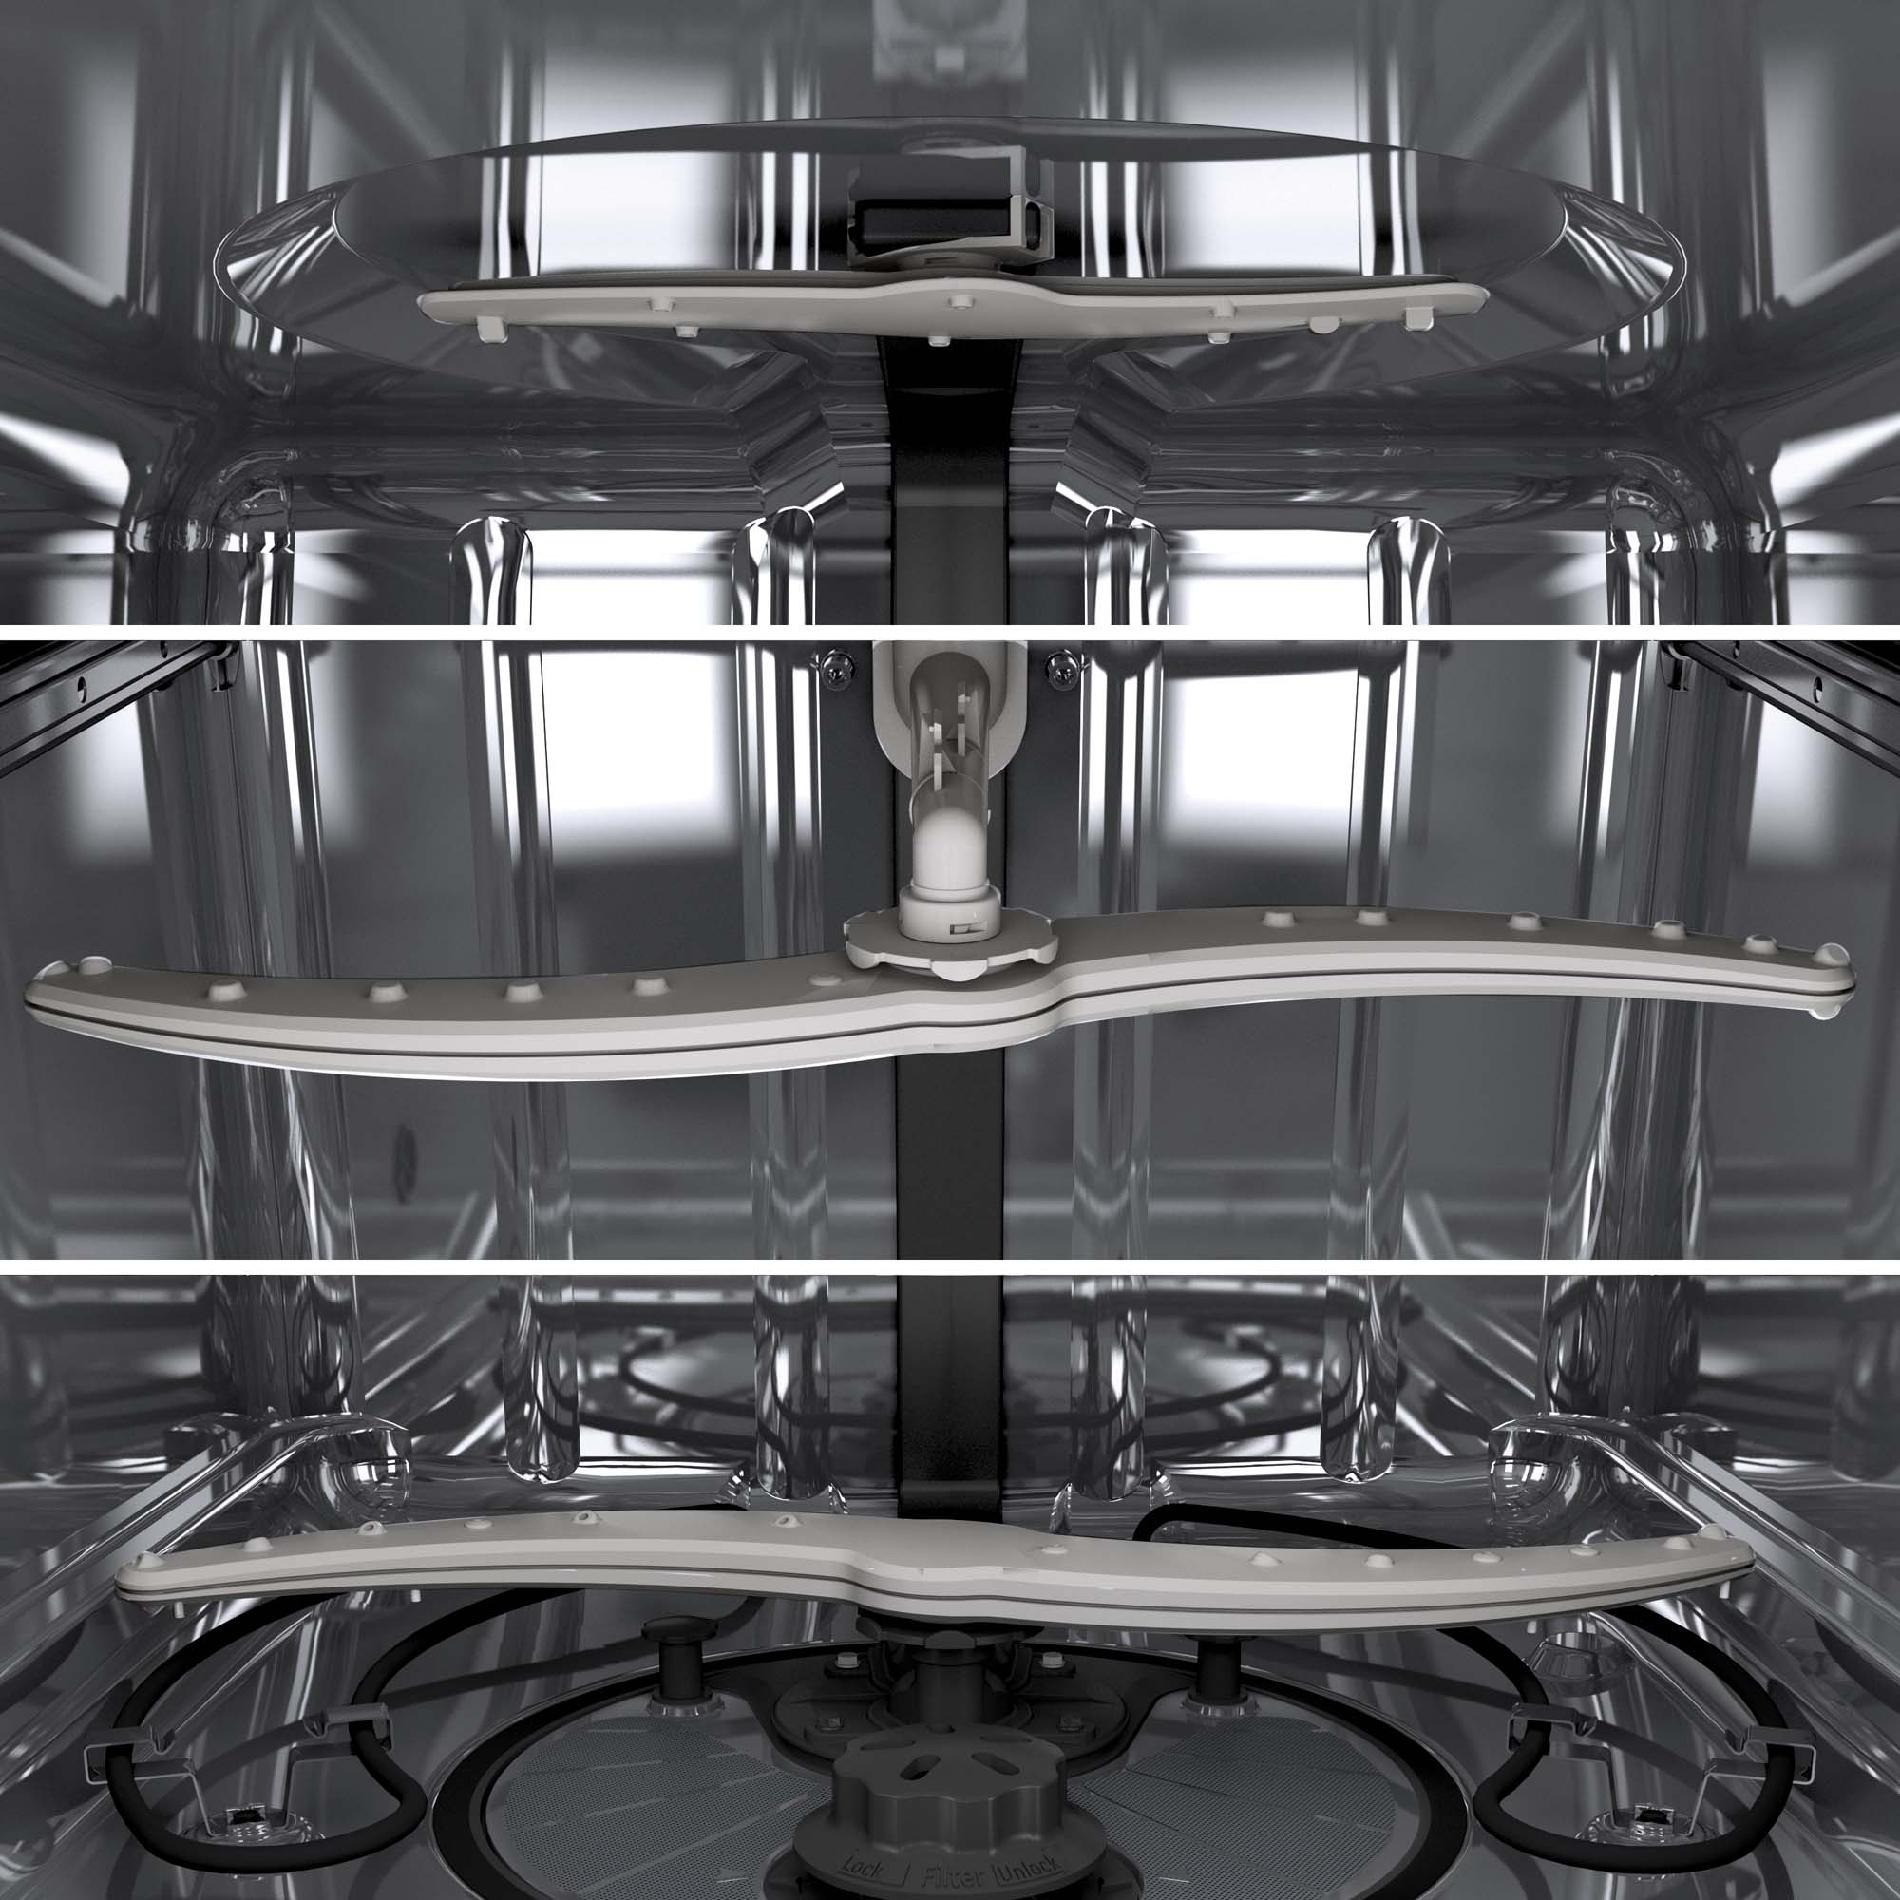 """GE Appliances GDF570SGFCC 24"""" Built-in Dishwasher w/ Stainless Steel Interior & Front Controls-  Bisque"""